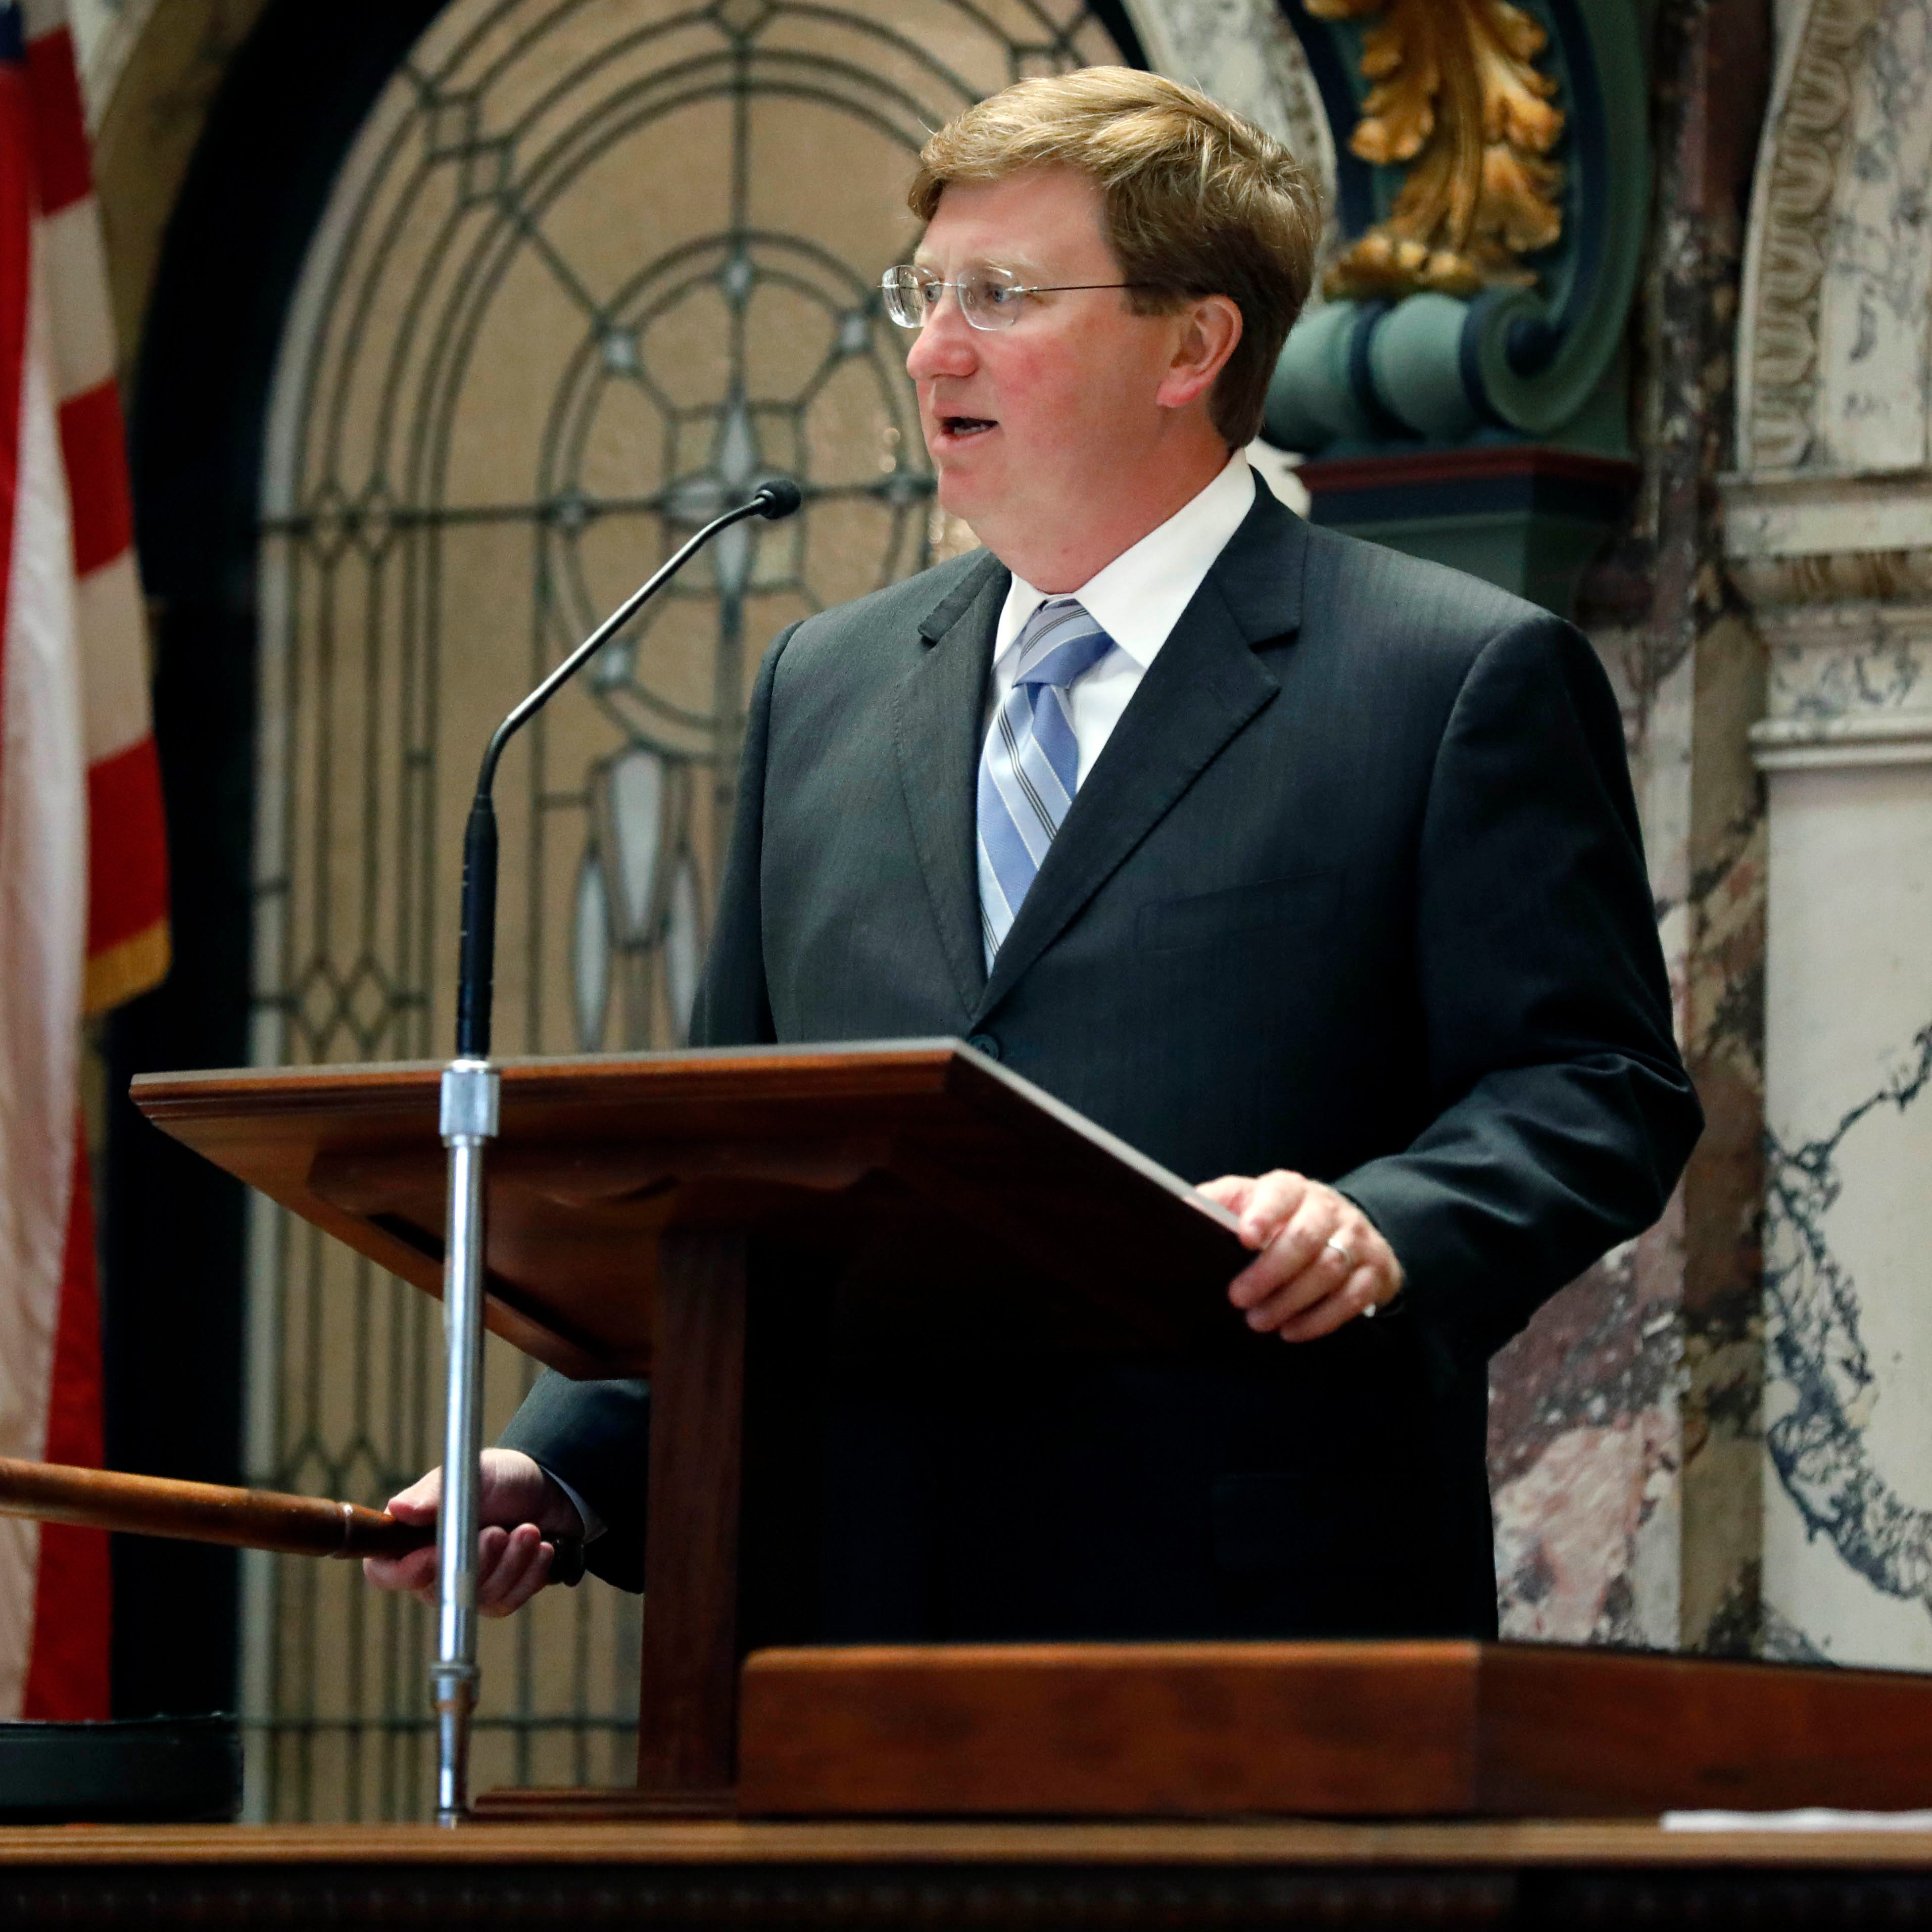 Lt. Gov. Tate Reeves is the conservative choice for governor in GOP primary